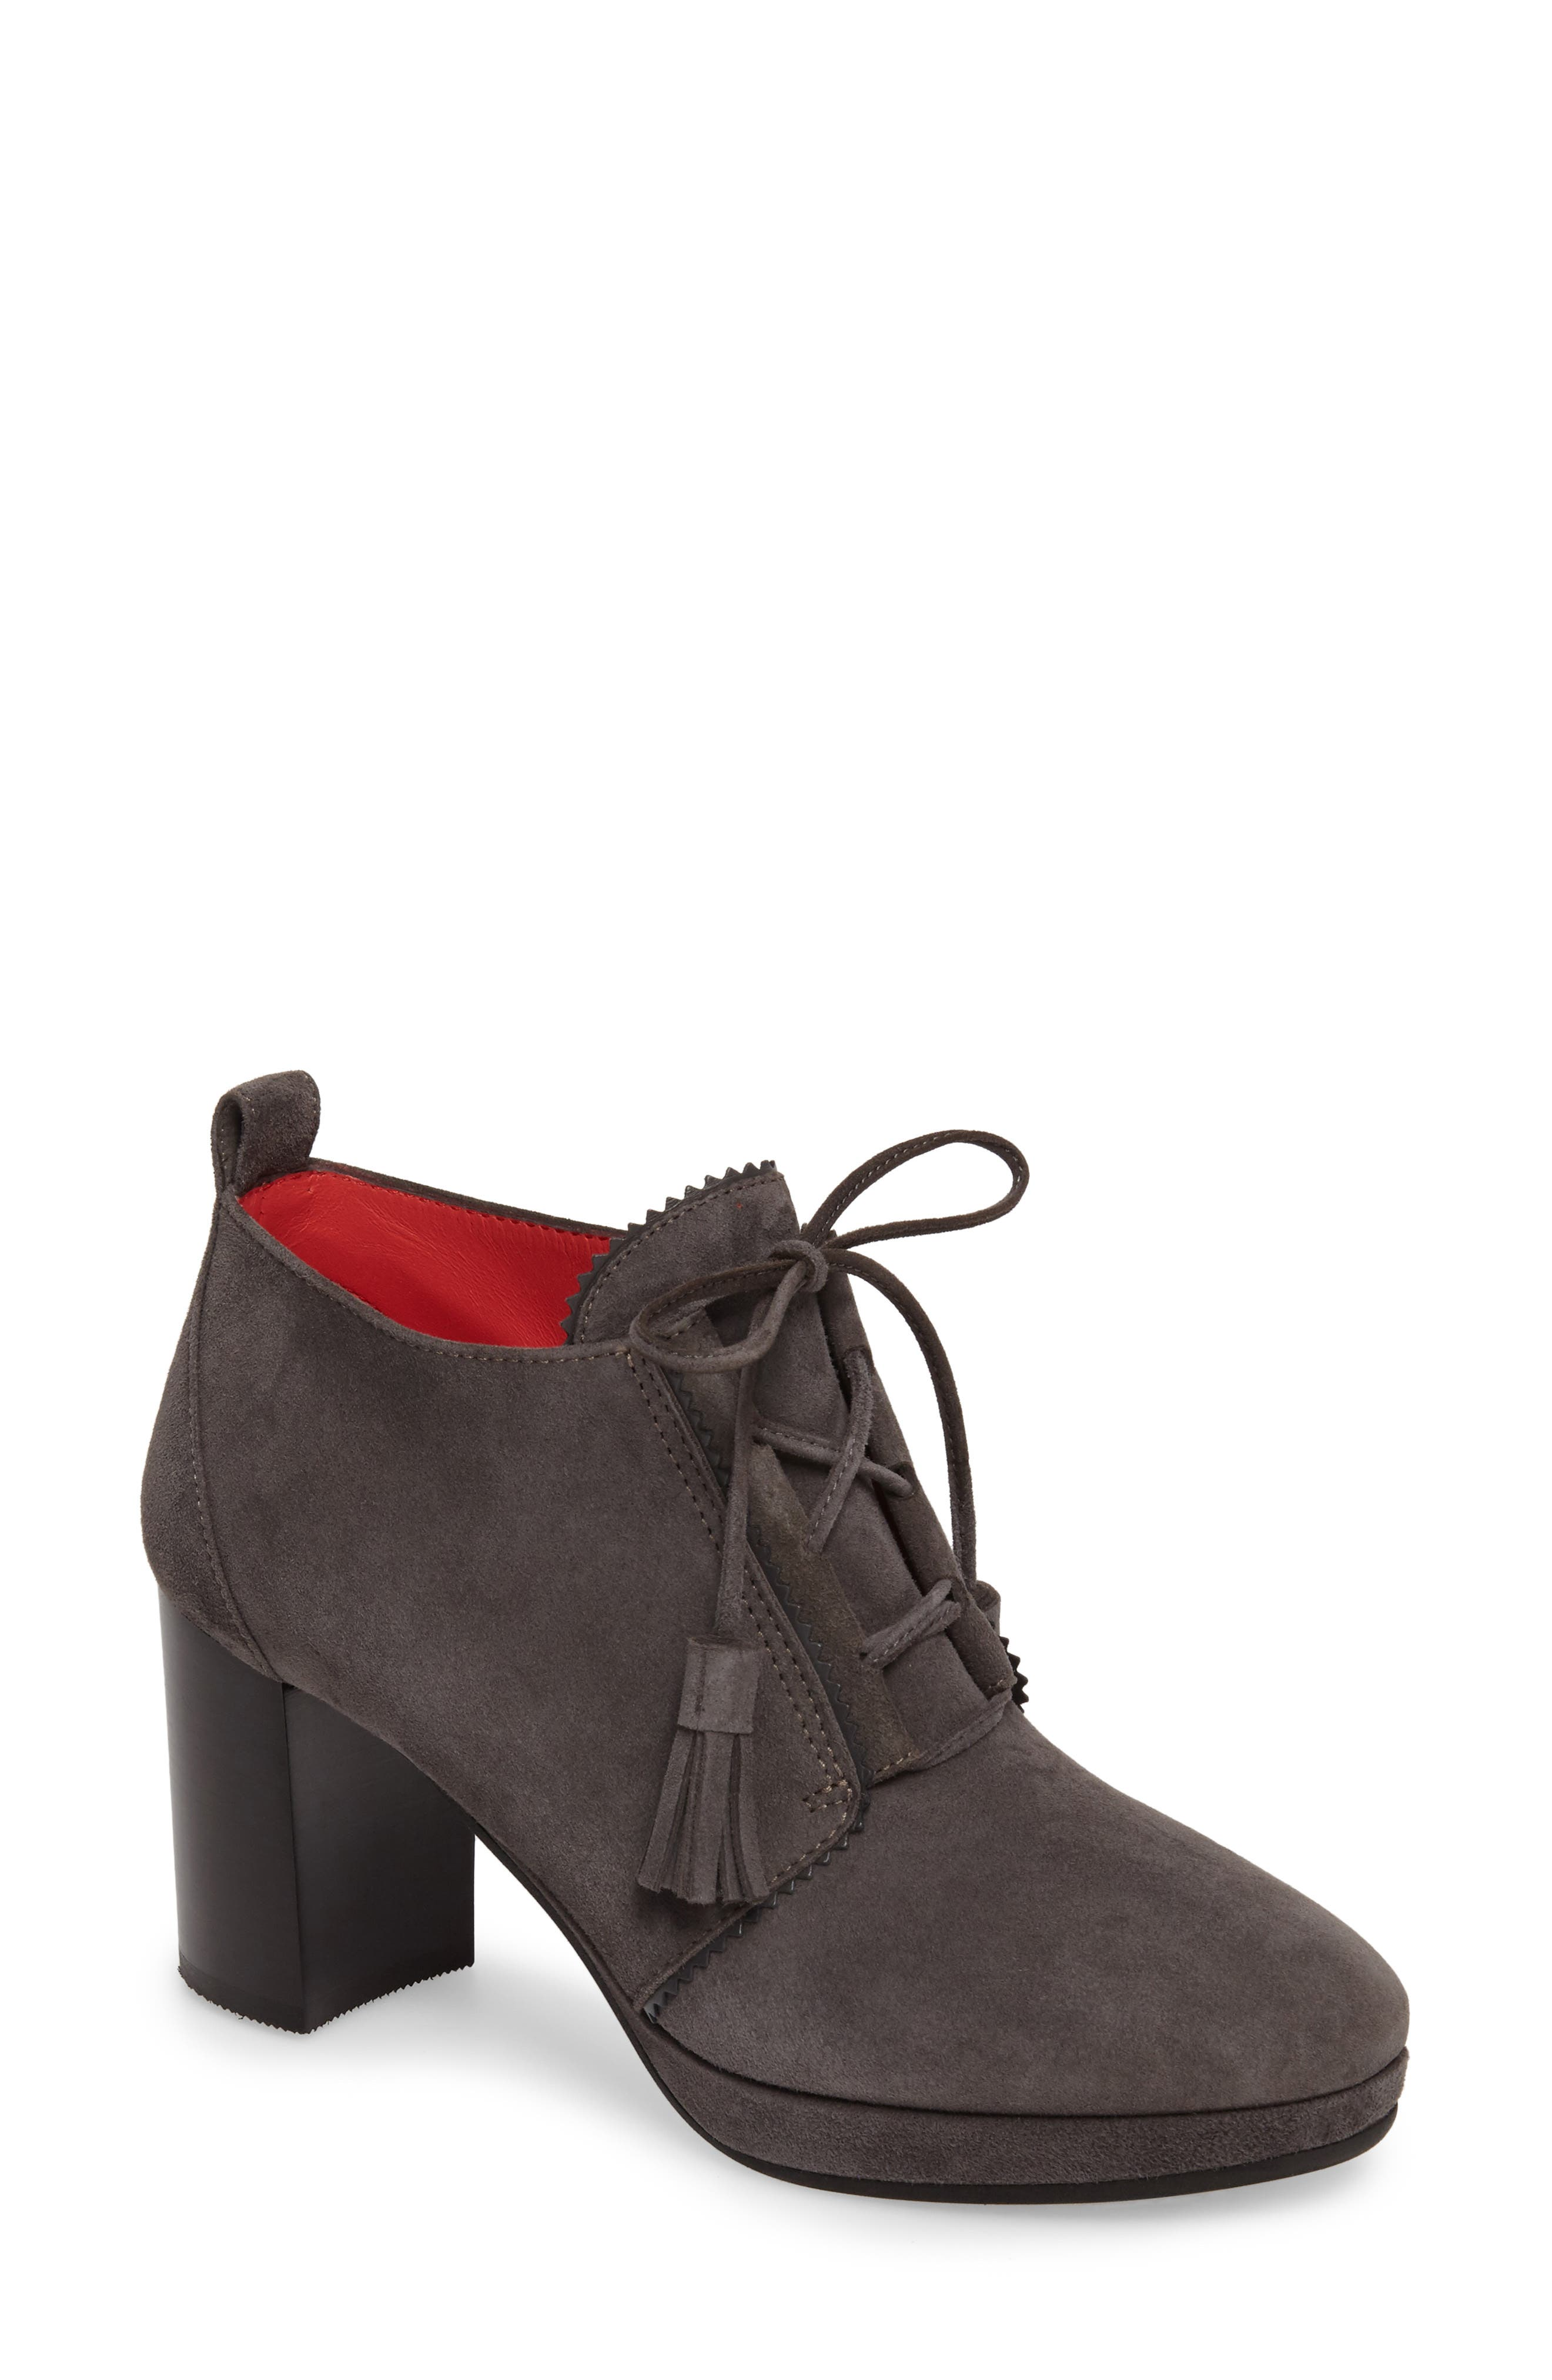 Alternate Image 1 Selected - Pas de Rouge Lace-Up Platform Bootie (Women)